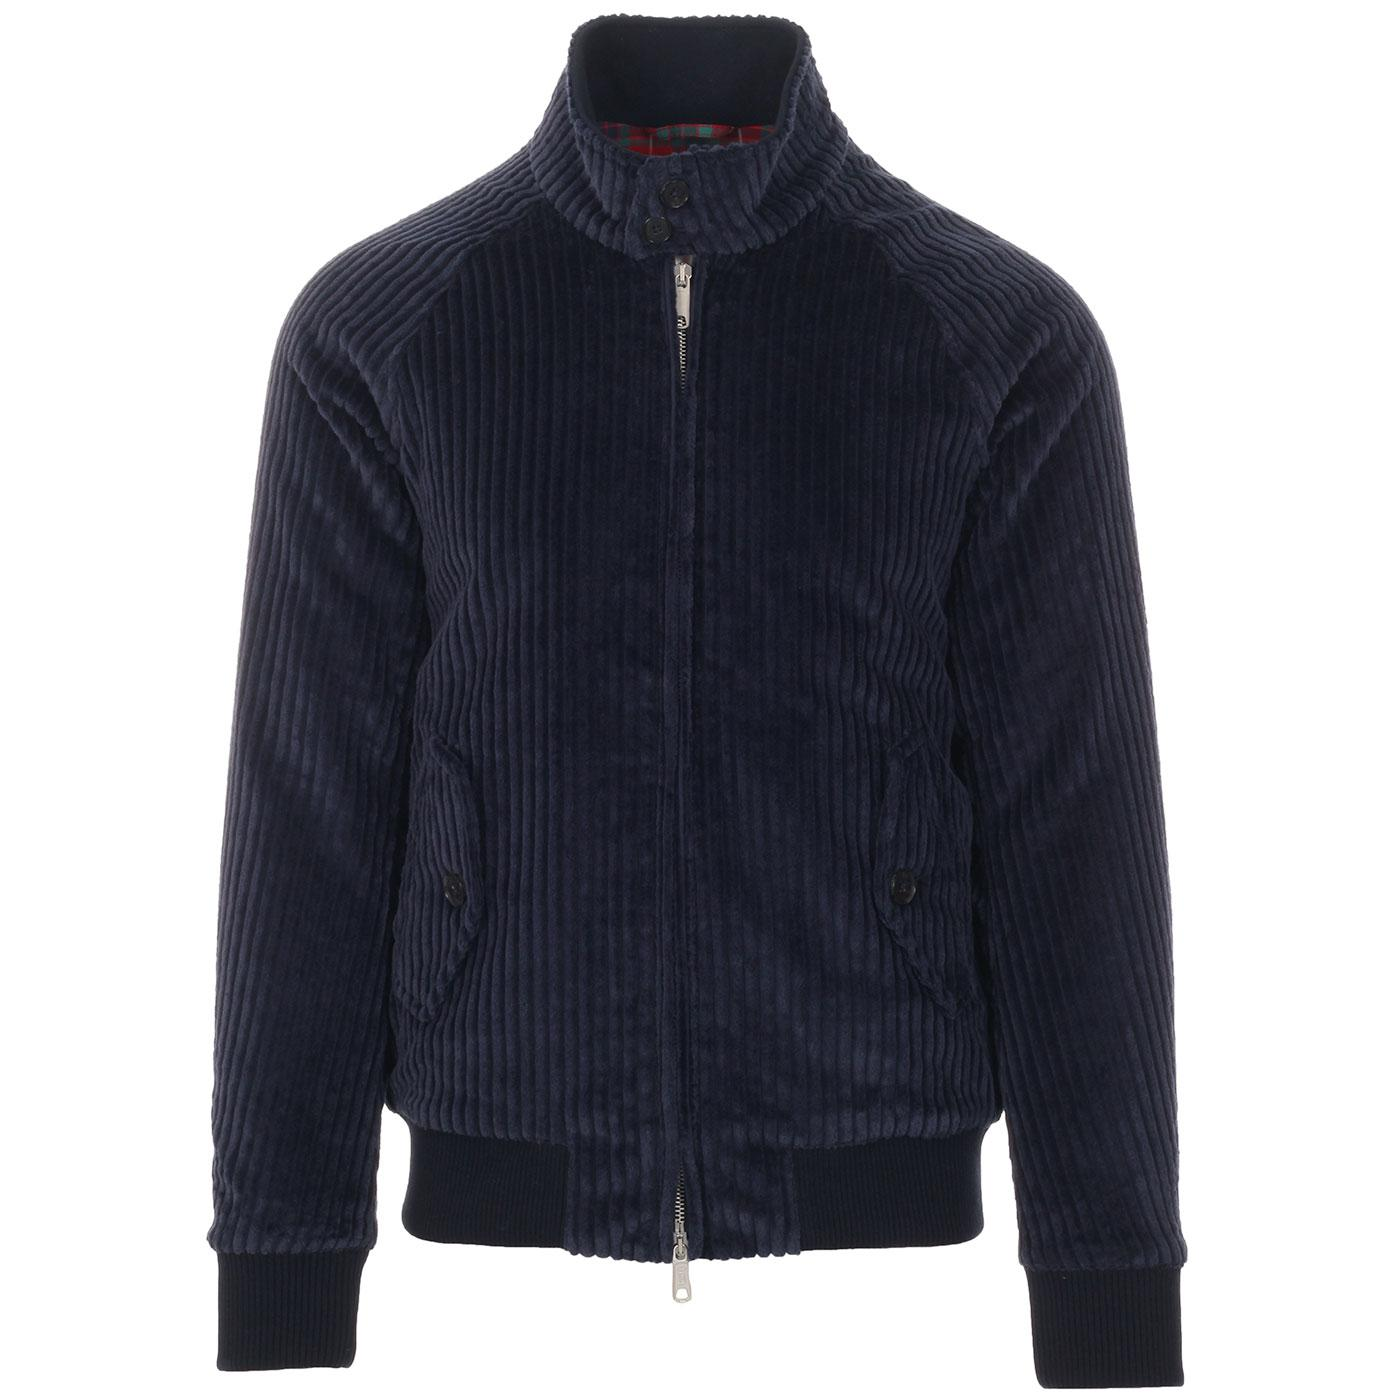 Robert G9 BARACUTA Mod Jumbo Cord Harrington NAVY